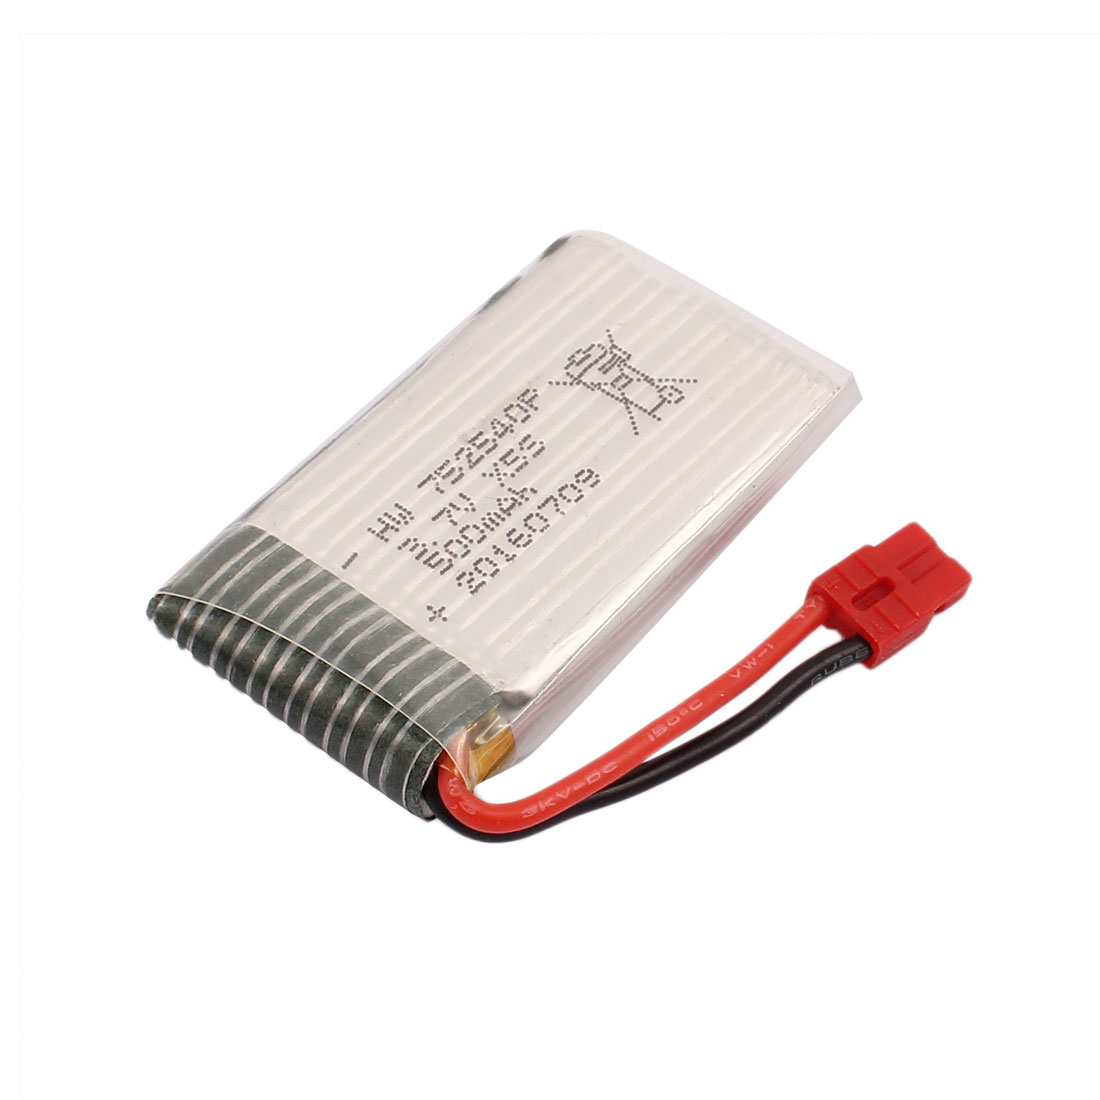 3.7V 500mAh Charging Lithium Polymer Li-po Battery XH-4.0 Connector for RC Airplane Aircraft